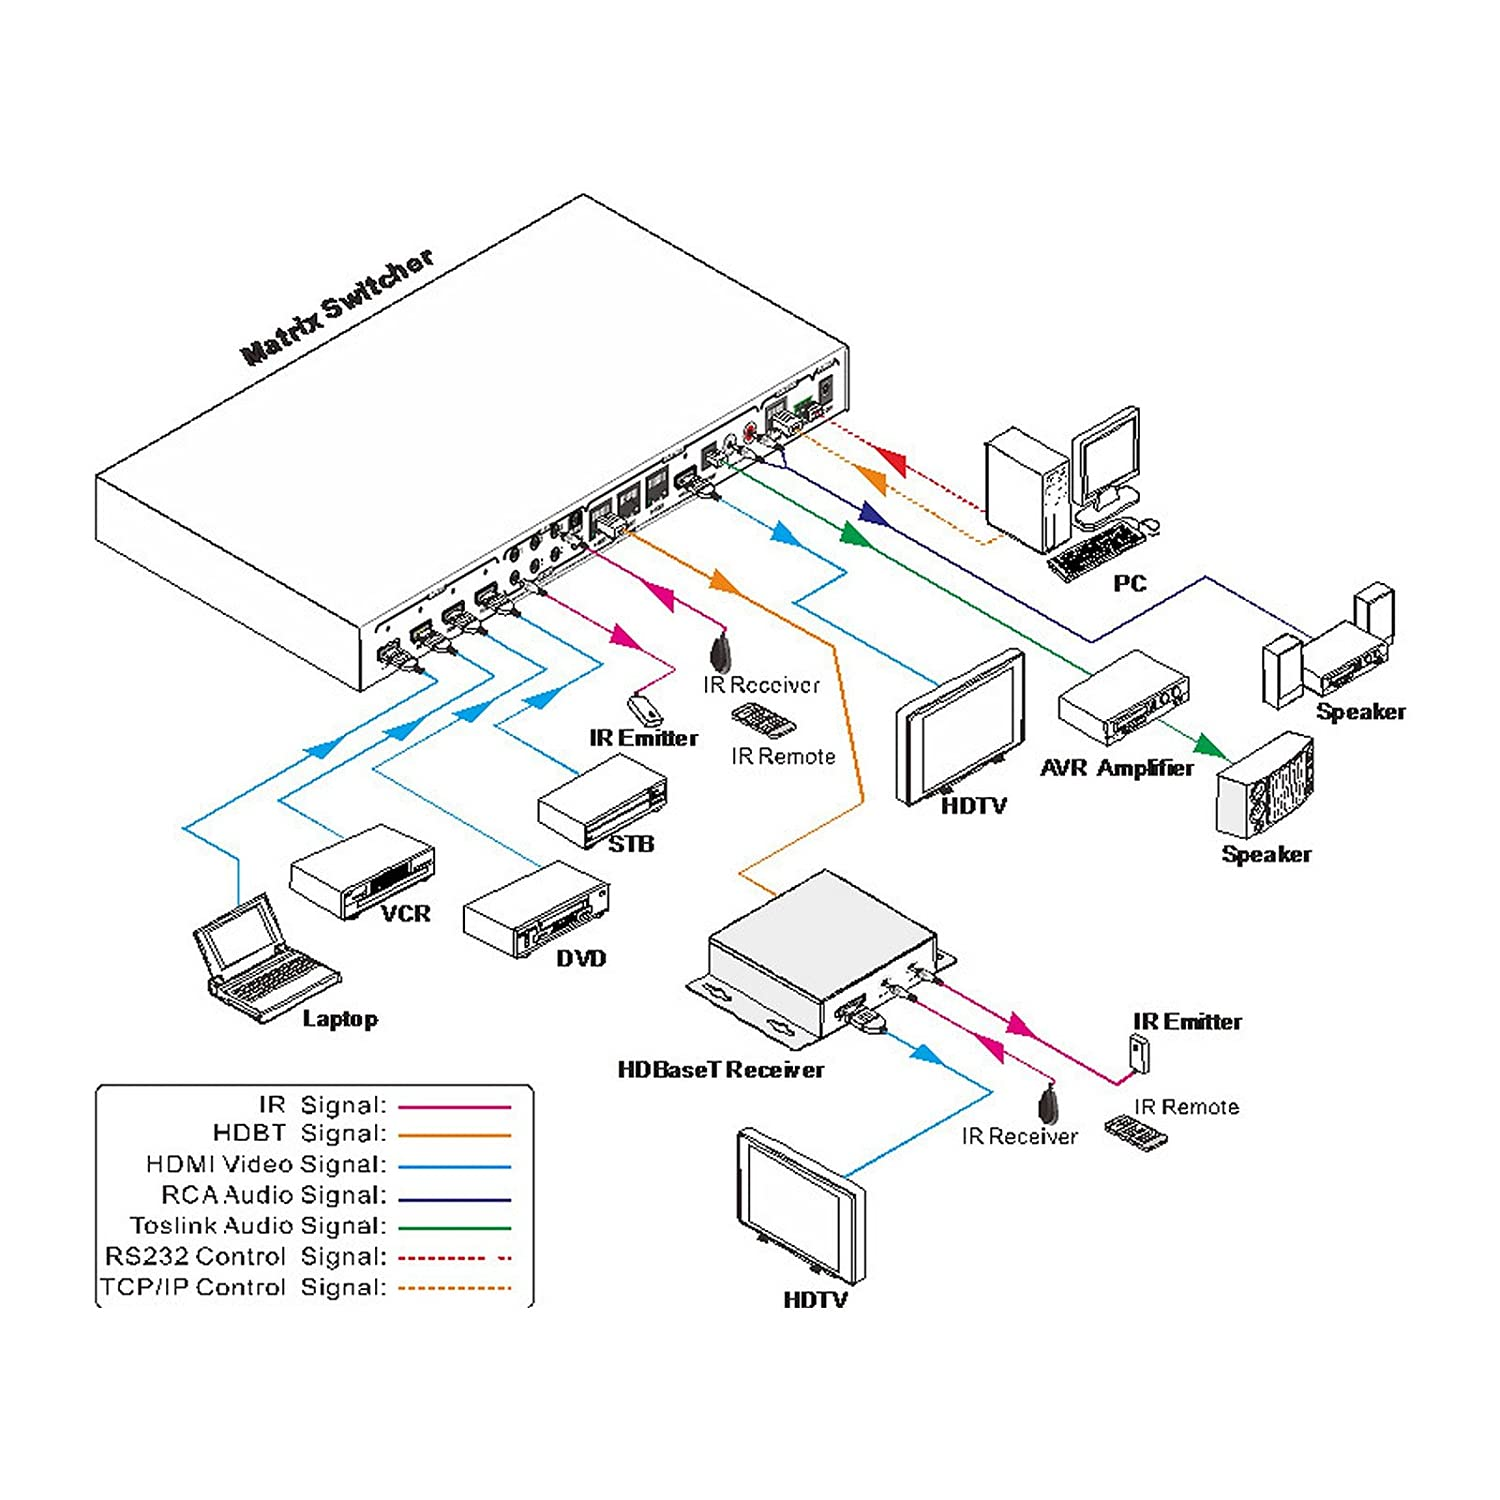 Muxlab 500412 Us Hdmi 4x4 Matrix Switcher Kit Electronics Ir Receiver Circuit Diagram